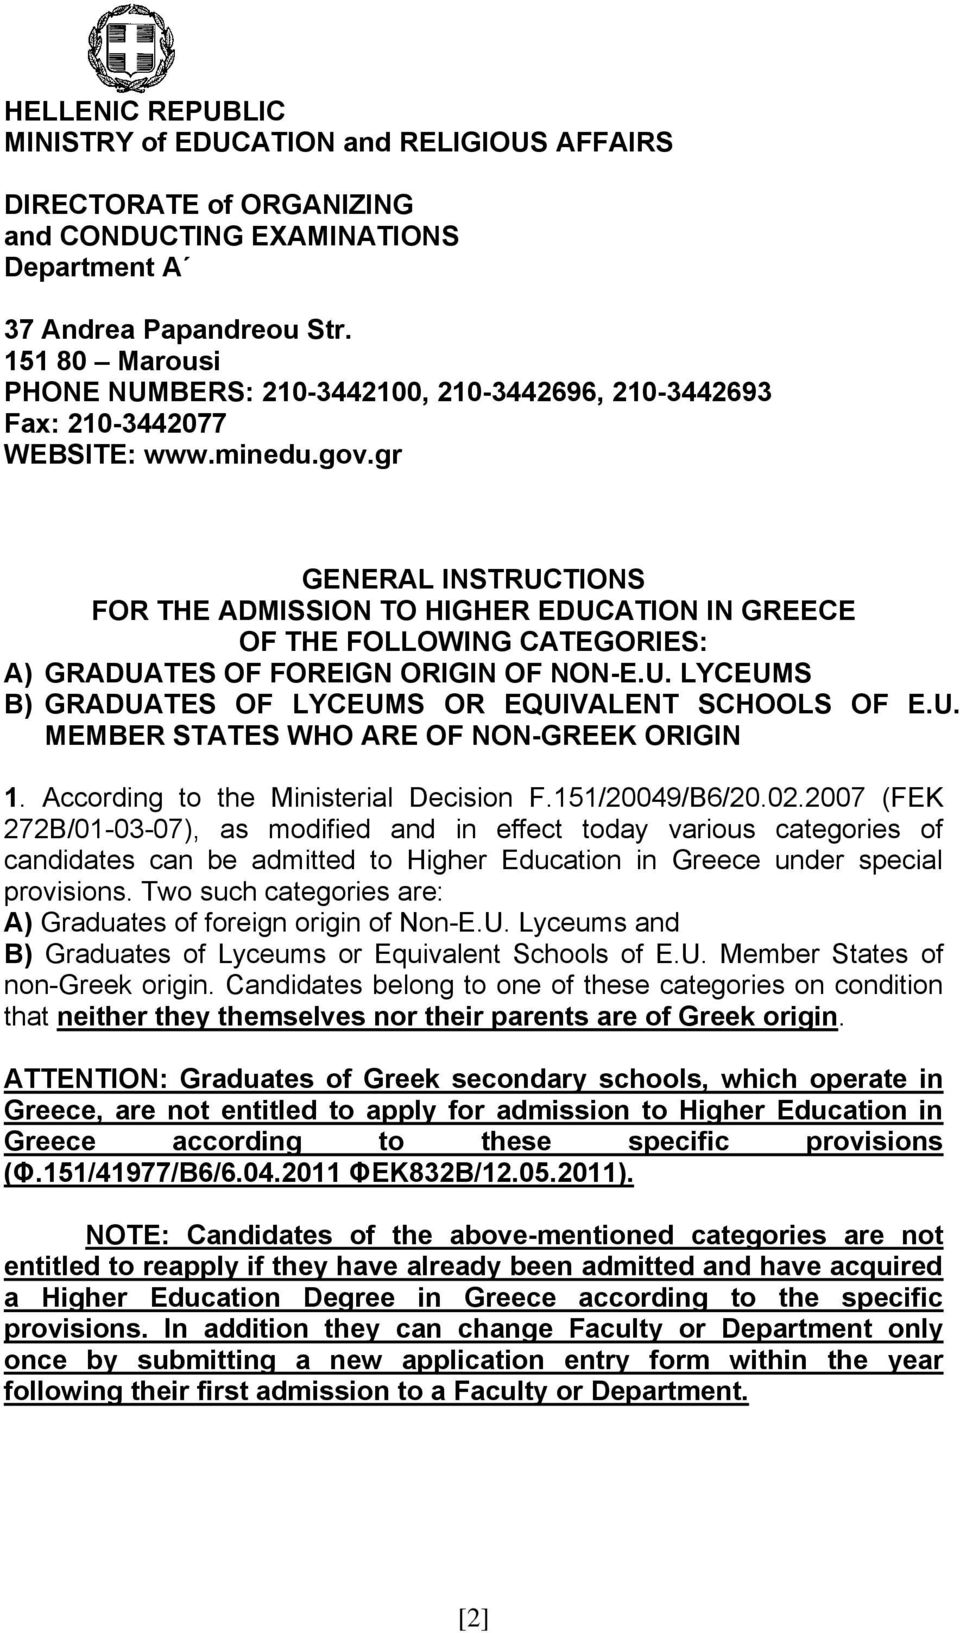 gr GENERAL INSTRUCTIONS FOR THE ADMISSION TO HIGHER EDUCATION IN GREECE OF THE FOLLOWING CATEGORIES: A) GRADUATES OF FOREIGN ORIGIN OF NON-E.U. LYCEUMS B) GRADUATES OF LYCEUMS OR EQUIVALENT SCHOOLS OF E.